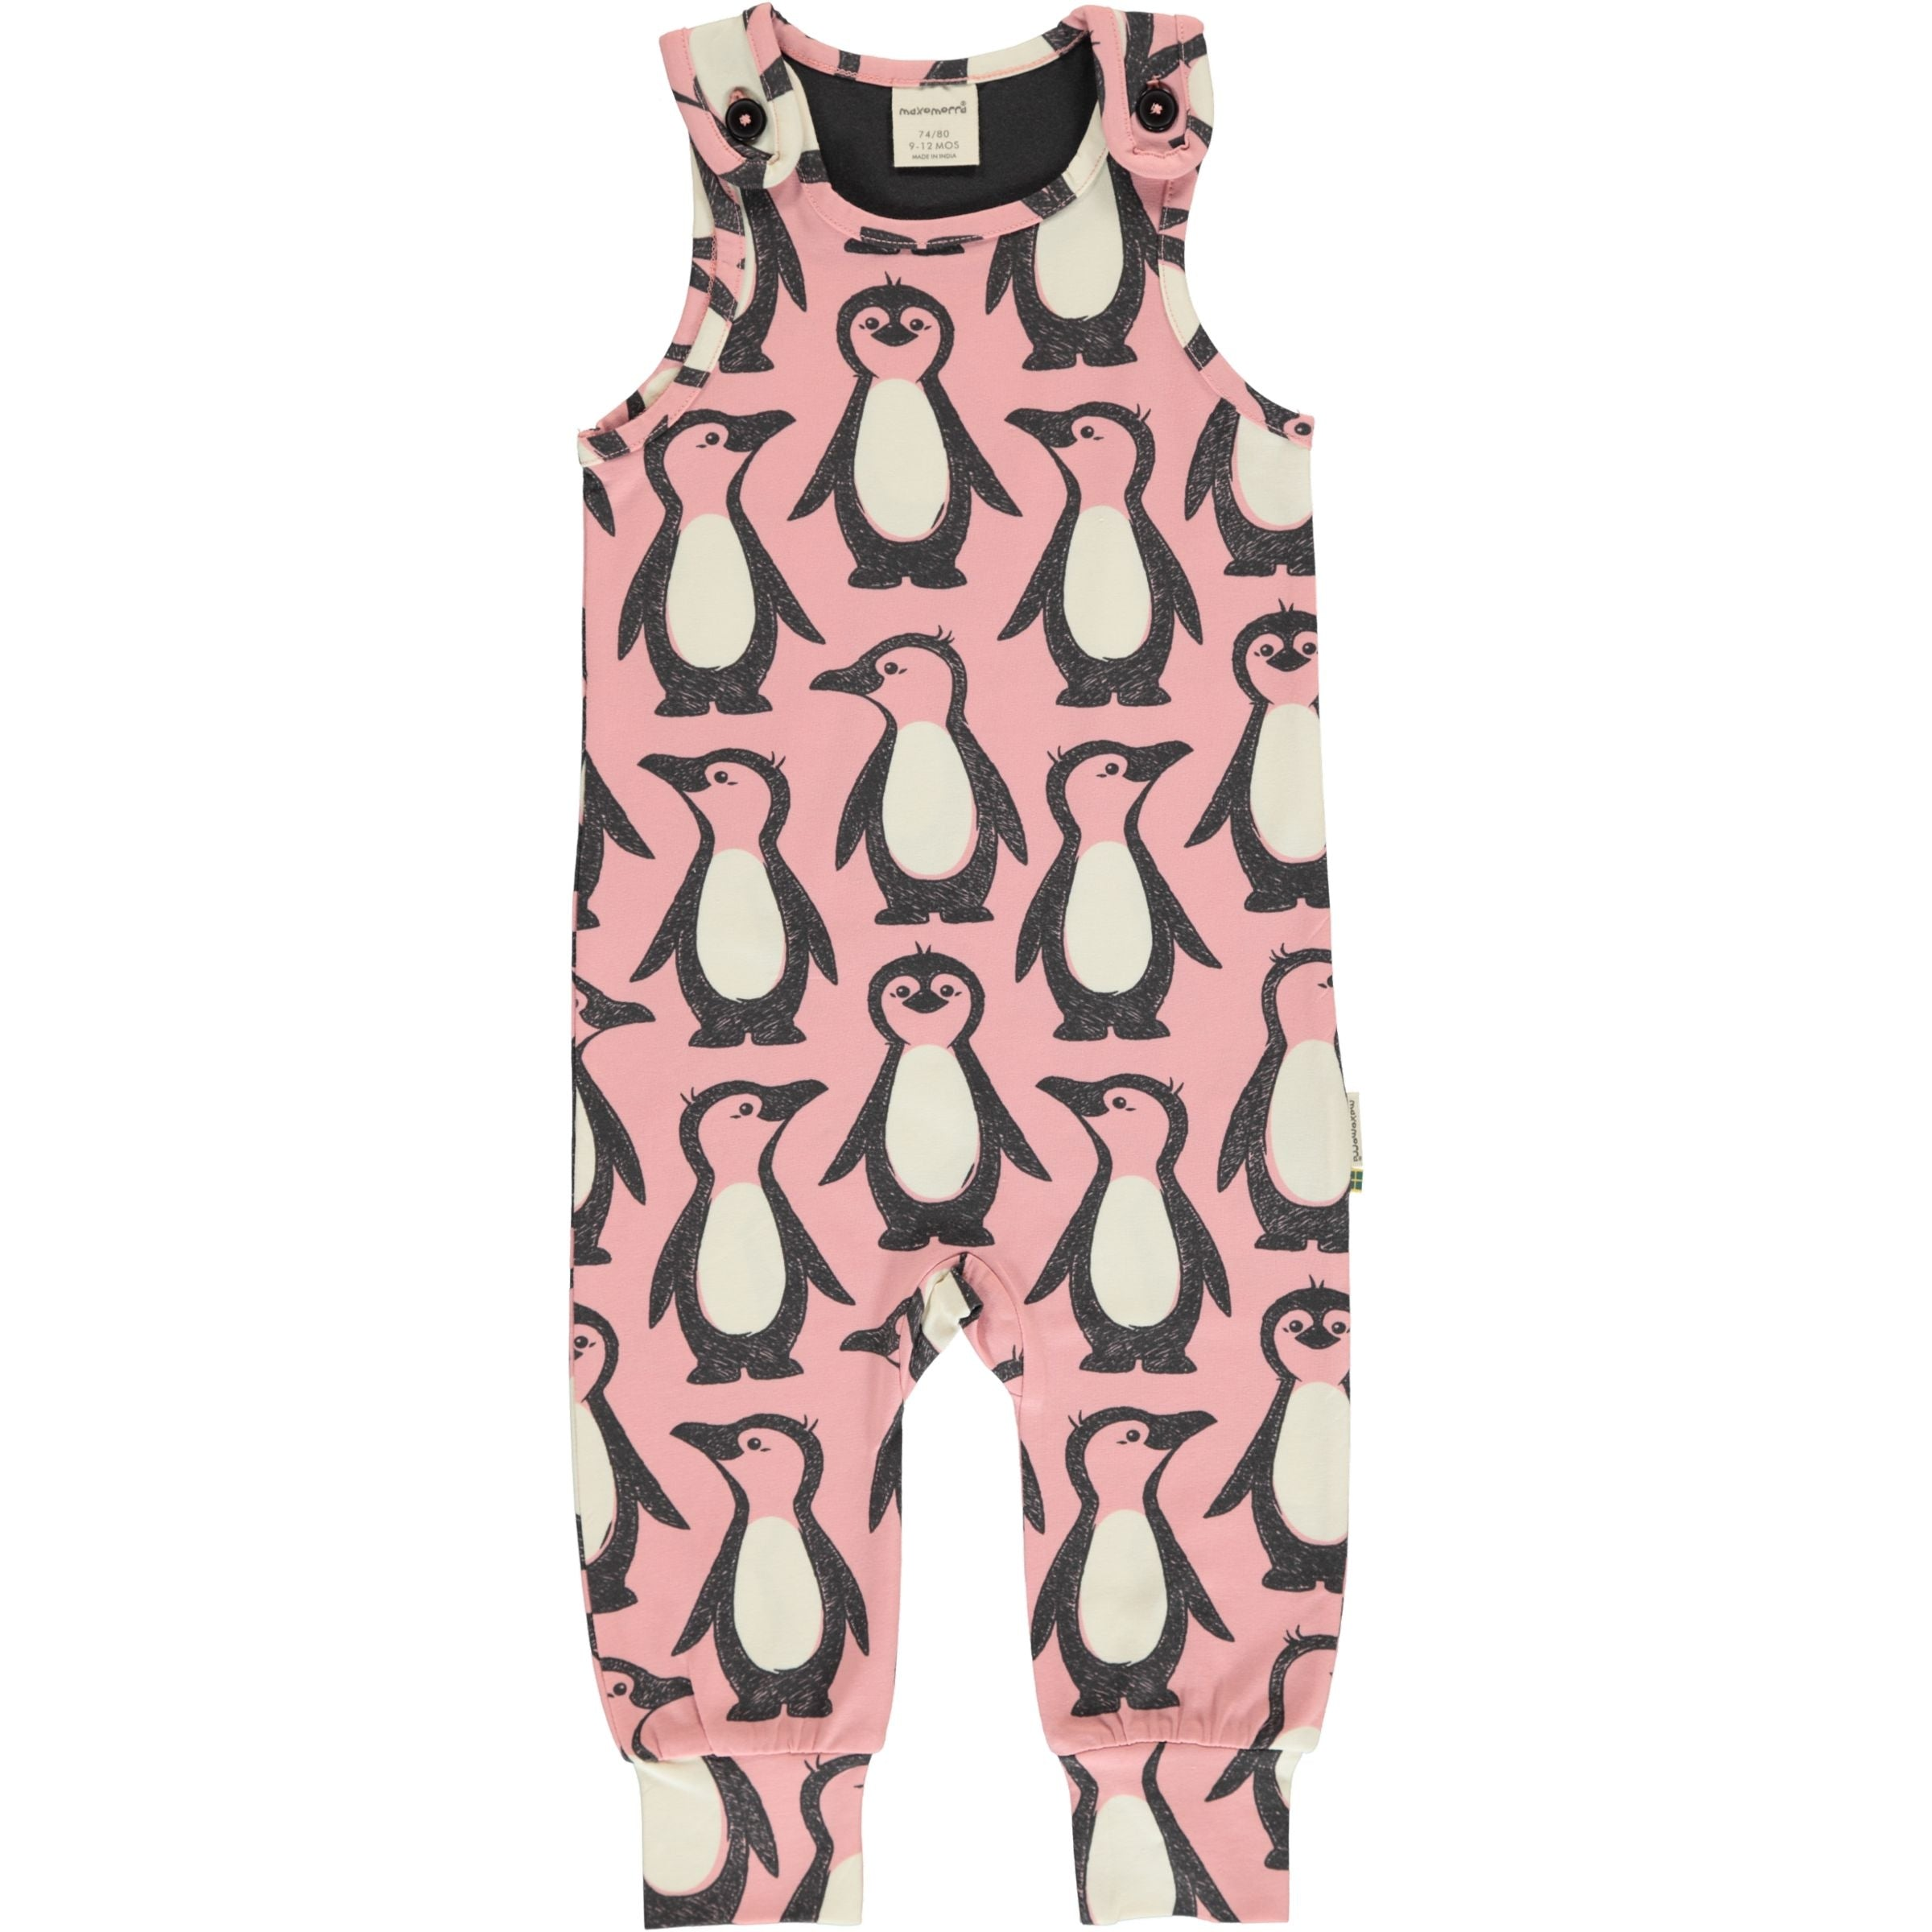 Maxomorra Playsuit Penguin Family,little-tiger-togs.